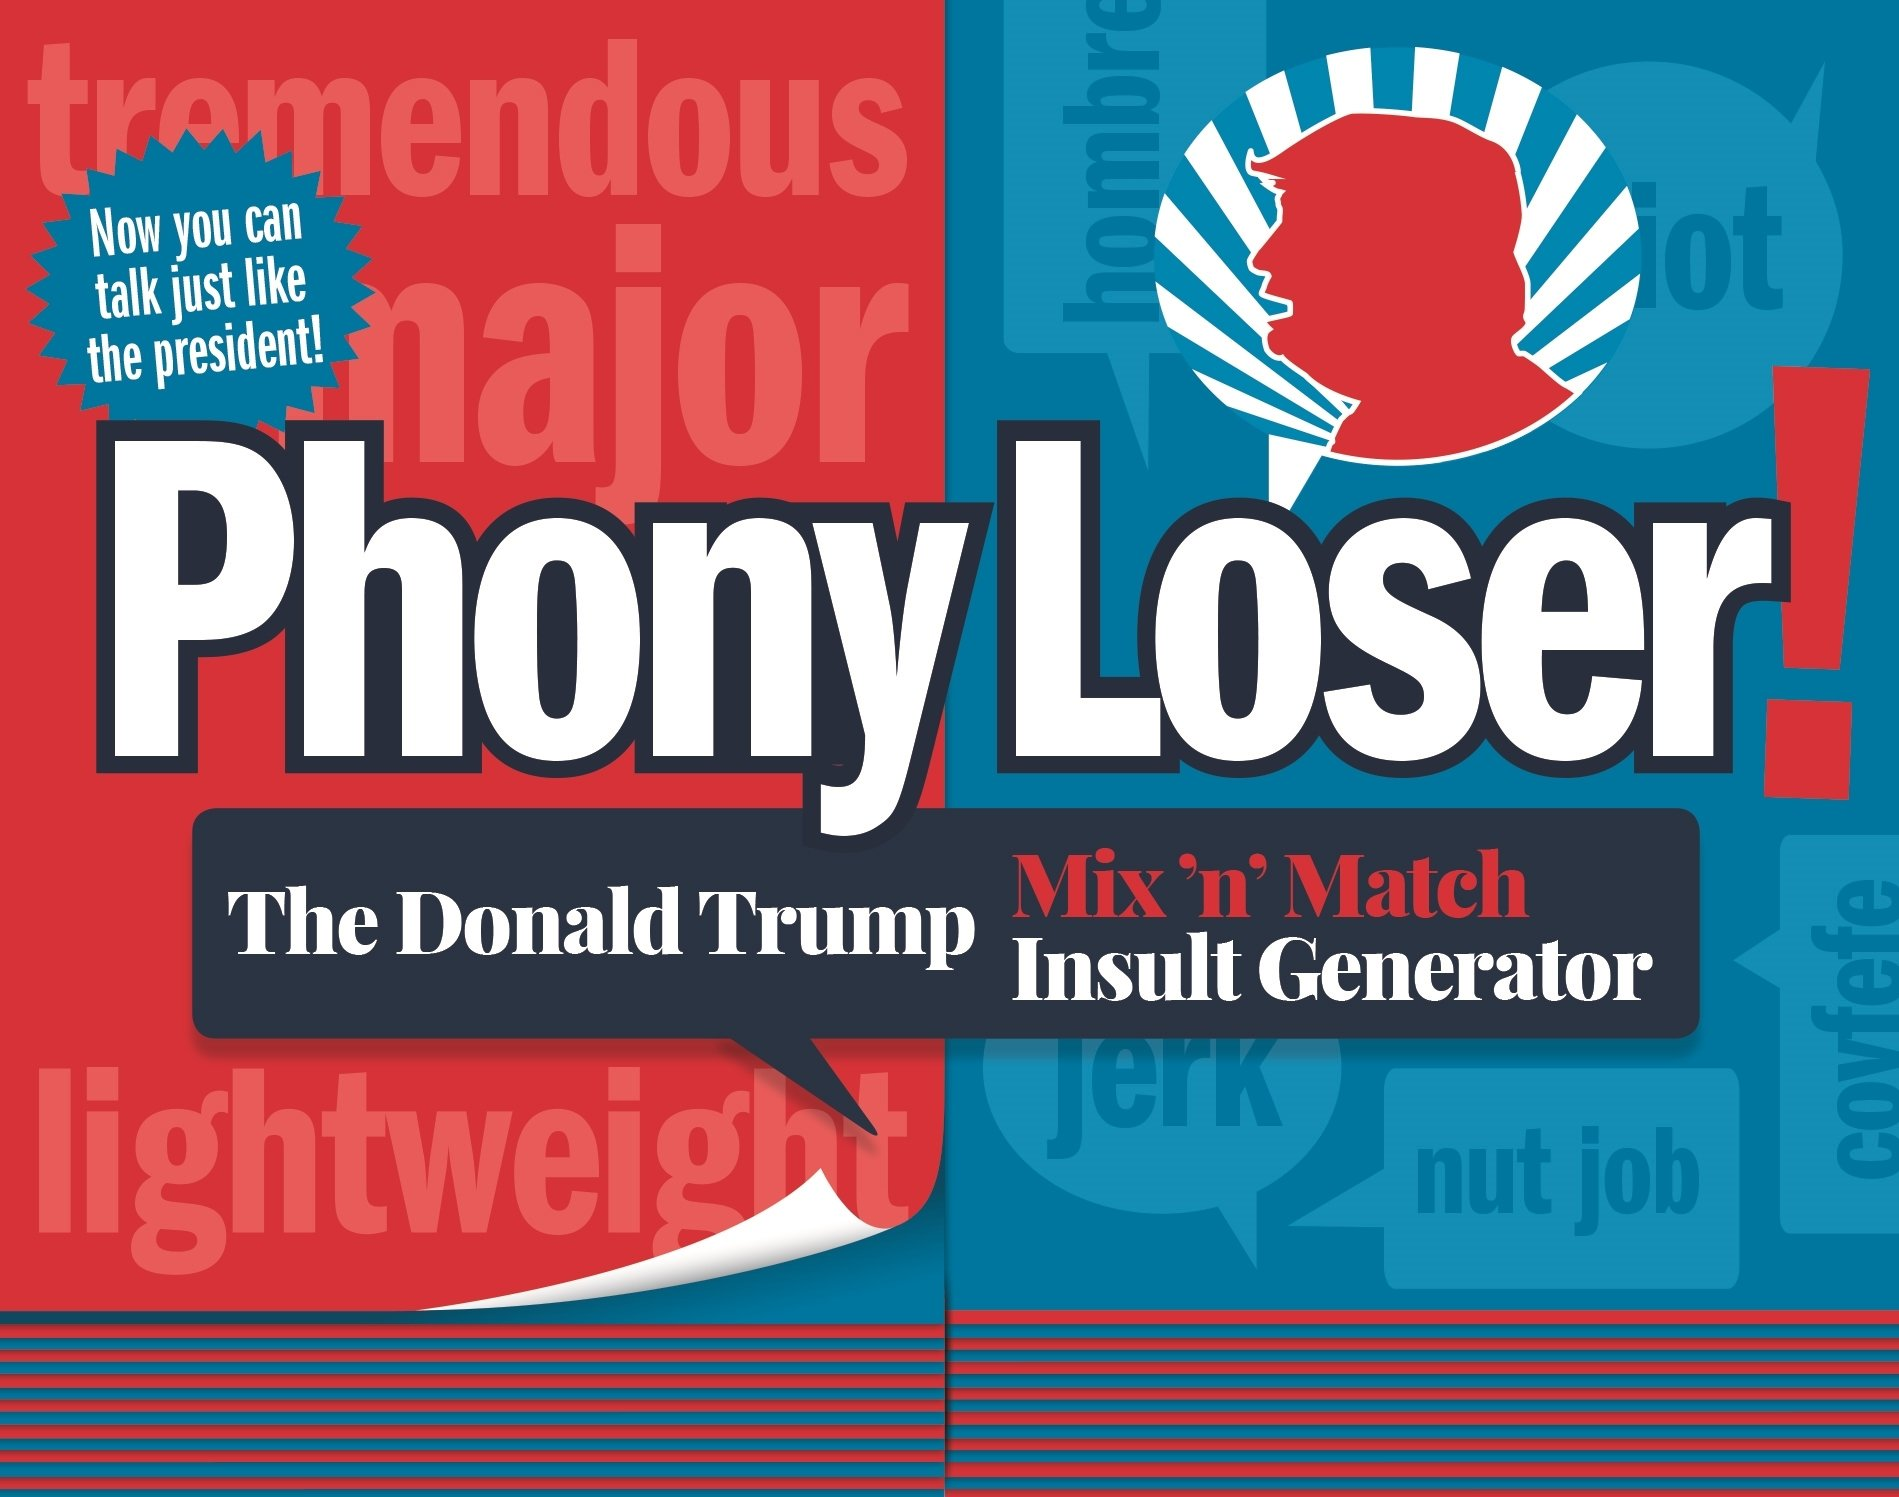 Phony Loser!: The Donald Trump Mix 'n' Match Insult